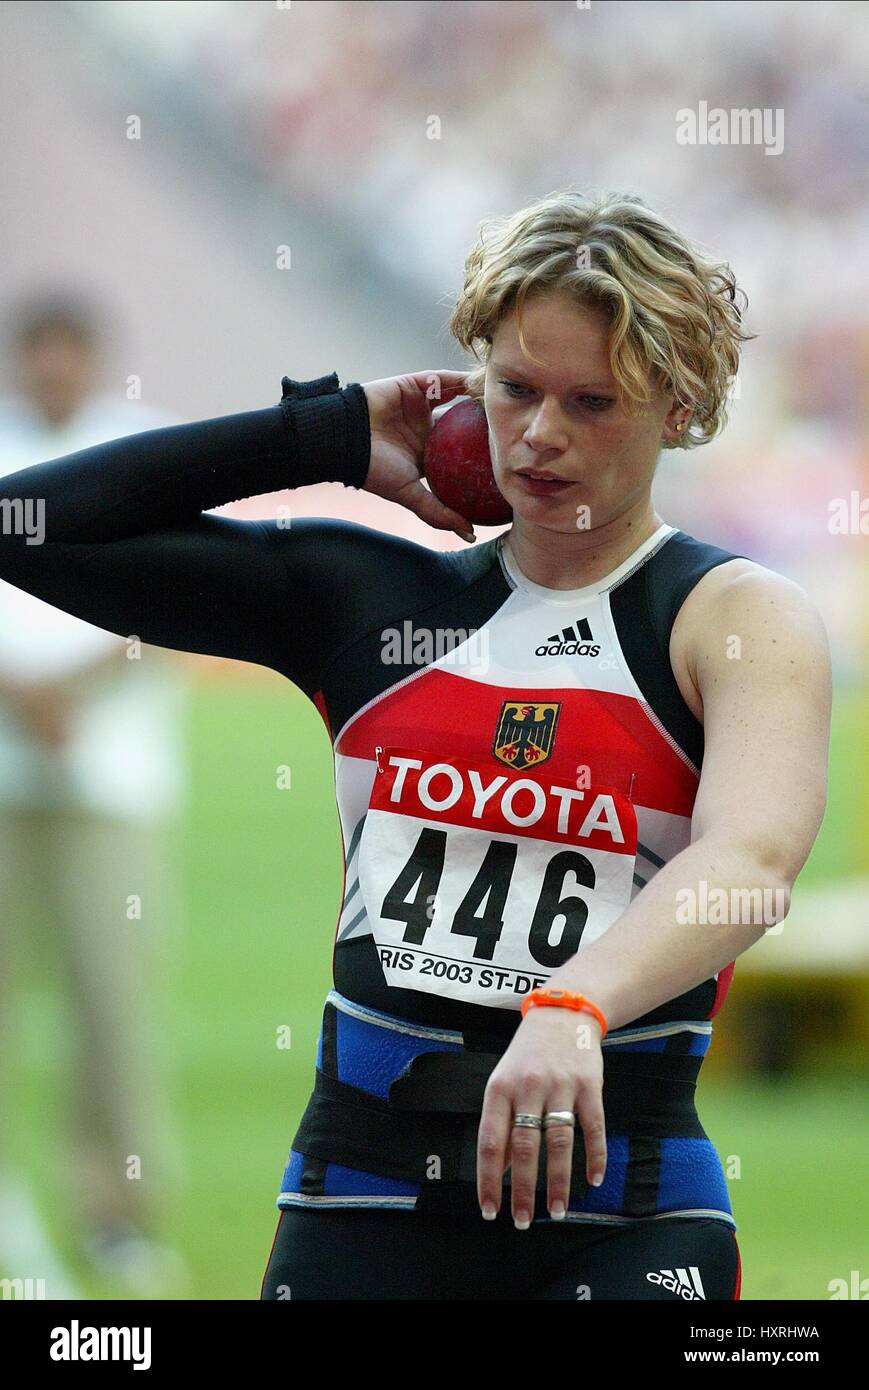 NADINE KLEINERT SHOT PUT STDE DE FRANCE ST DENIS PARIS FRANCE 27 August 2003 - Stock Image